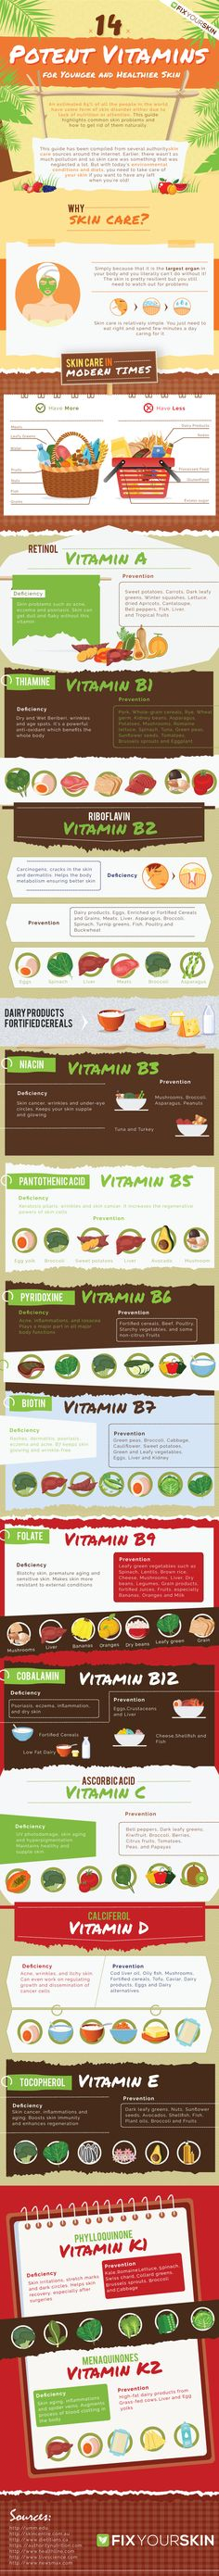 Your comprehensive vitamin guide with infographic for healthier and younger looking skin from the skin health experts at Fix Your Skin #fixyouskin #skincare #beauty